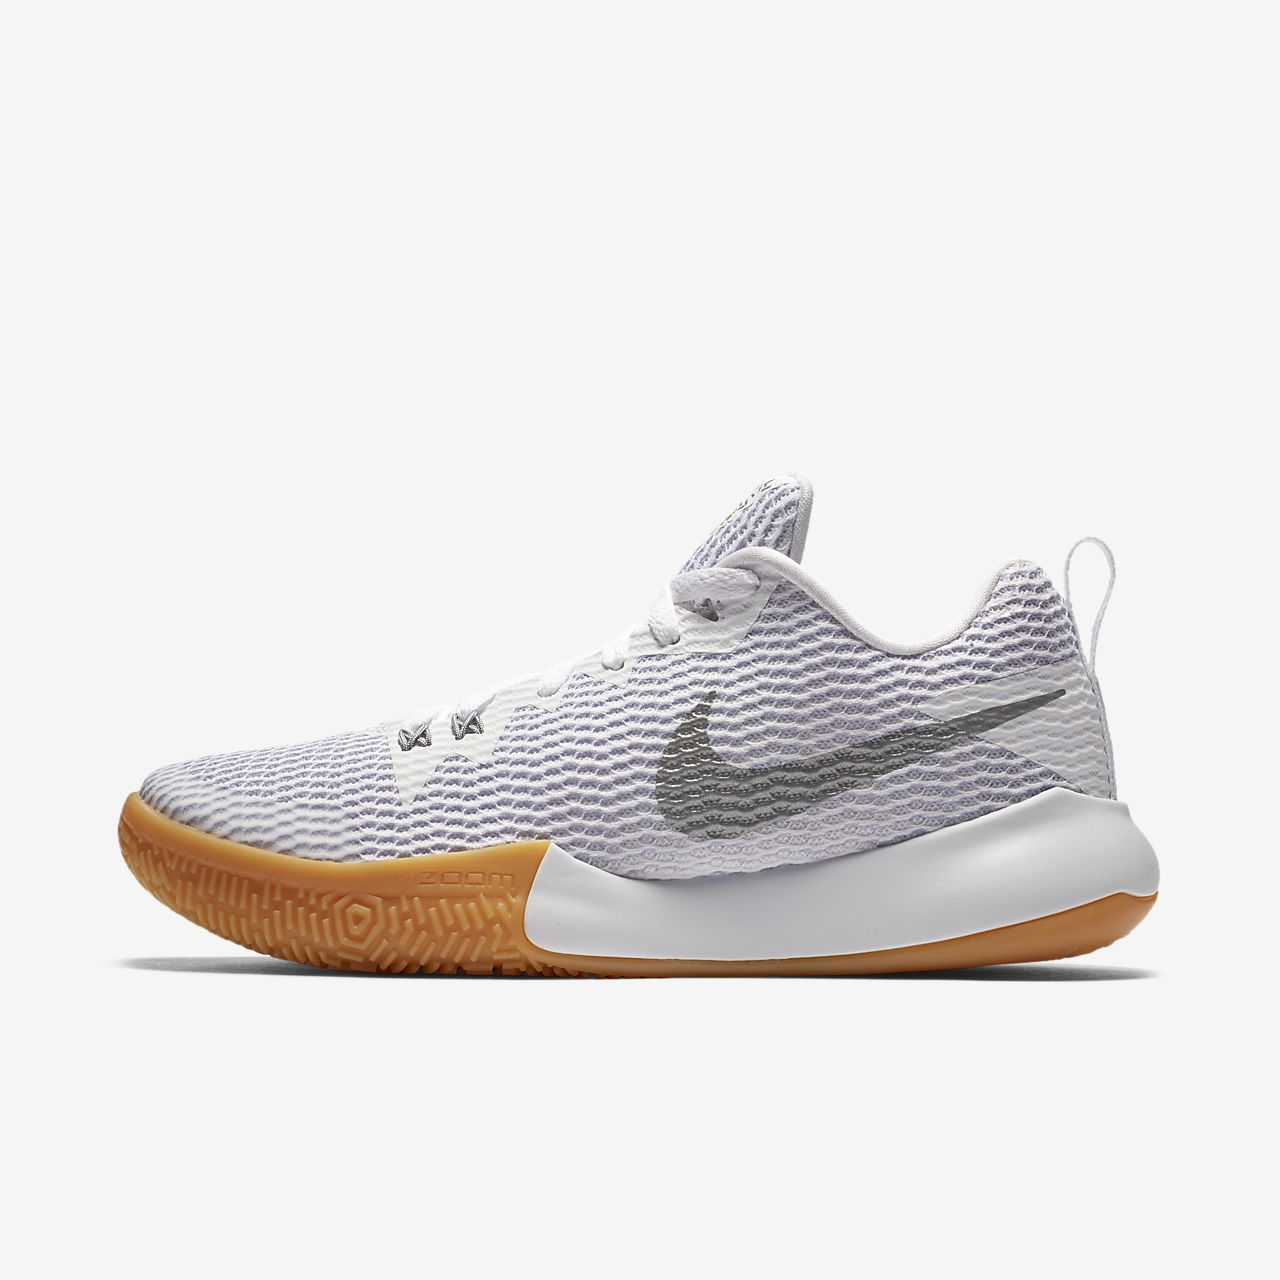 online retailer 80fe4 6bfea ... Chaussure de basketball Nike Zoom Live II pour Femme